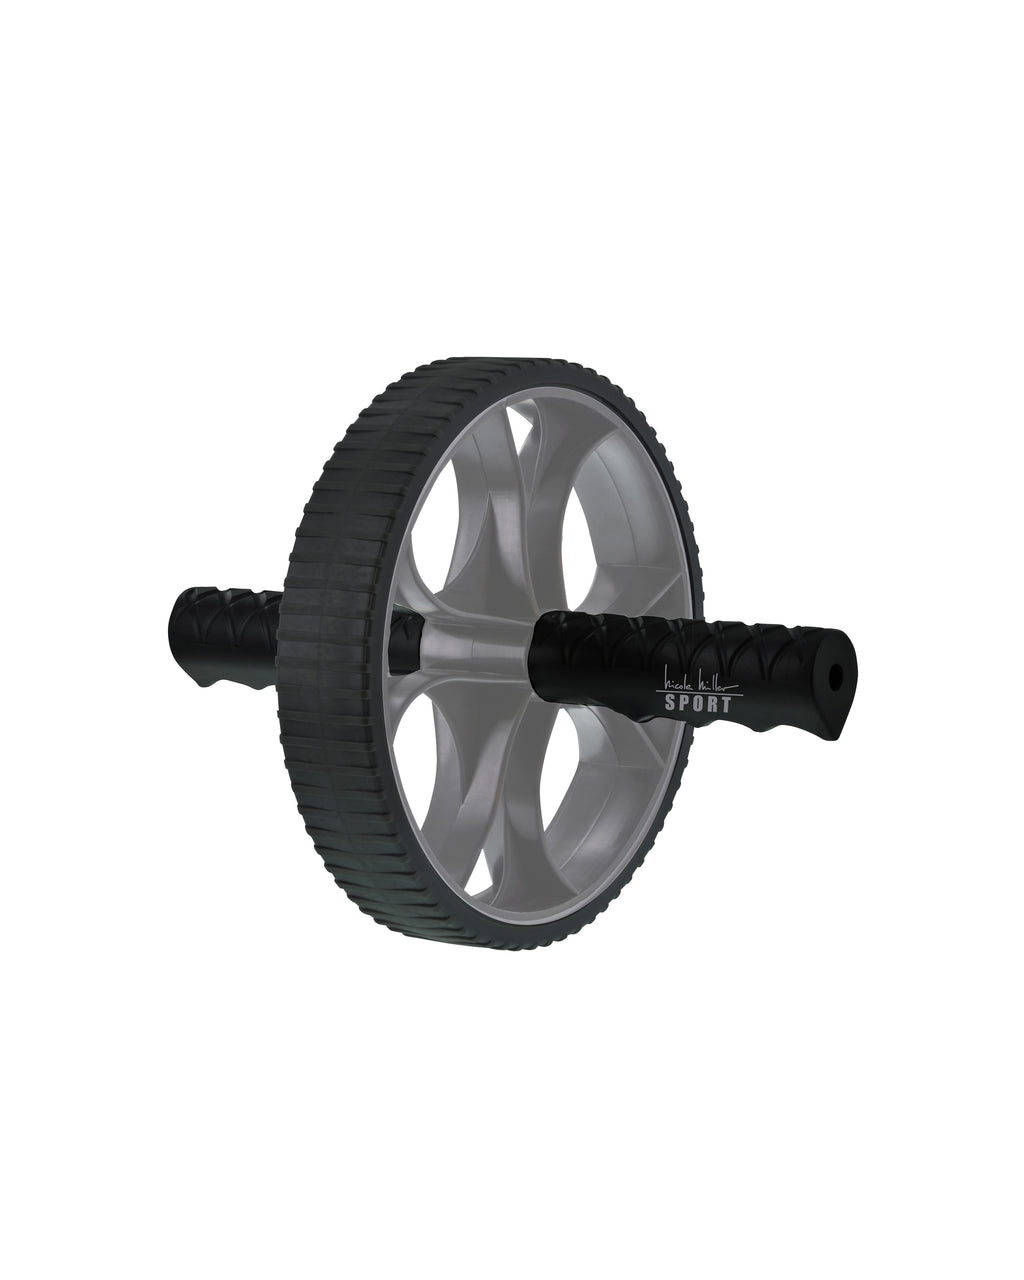 NMABR01 - AB WHEEL - accessories - activewear - Improve your core strength with Nicole Miller Ab Wheel. The non-skid wheel allows for easy rolling on a variety of surfaces without wobbling or slipping for smooth controlled movements.